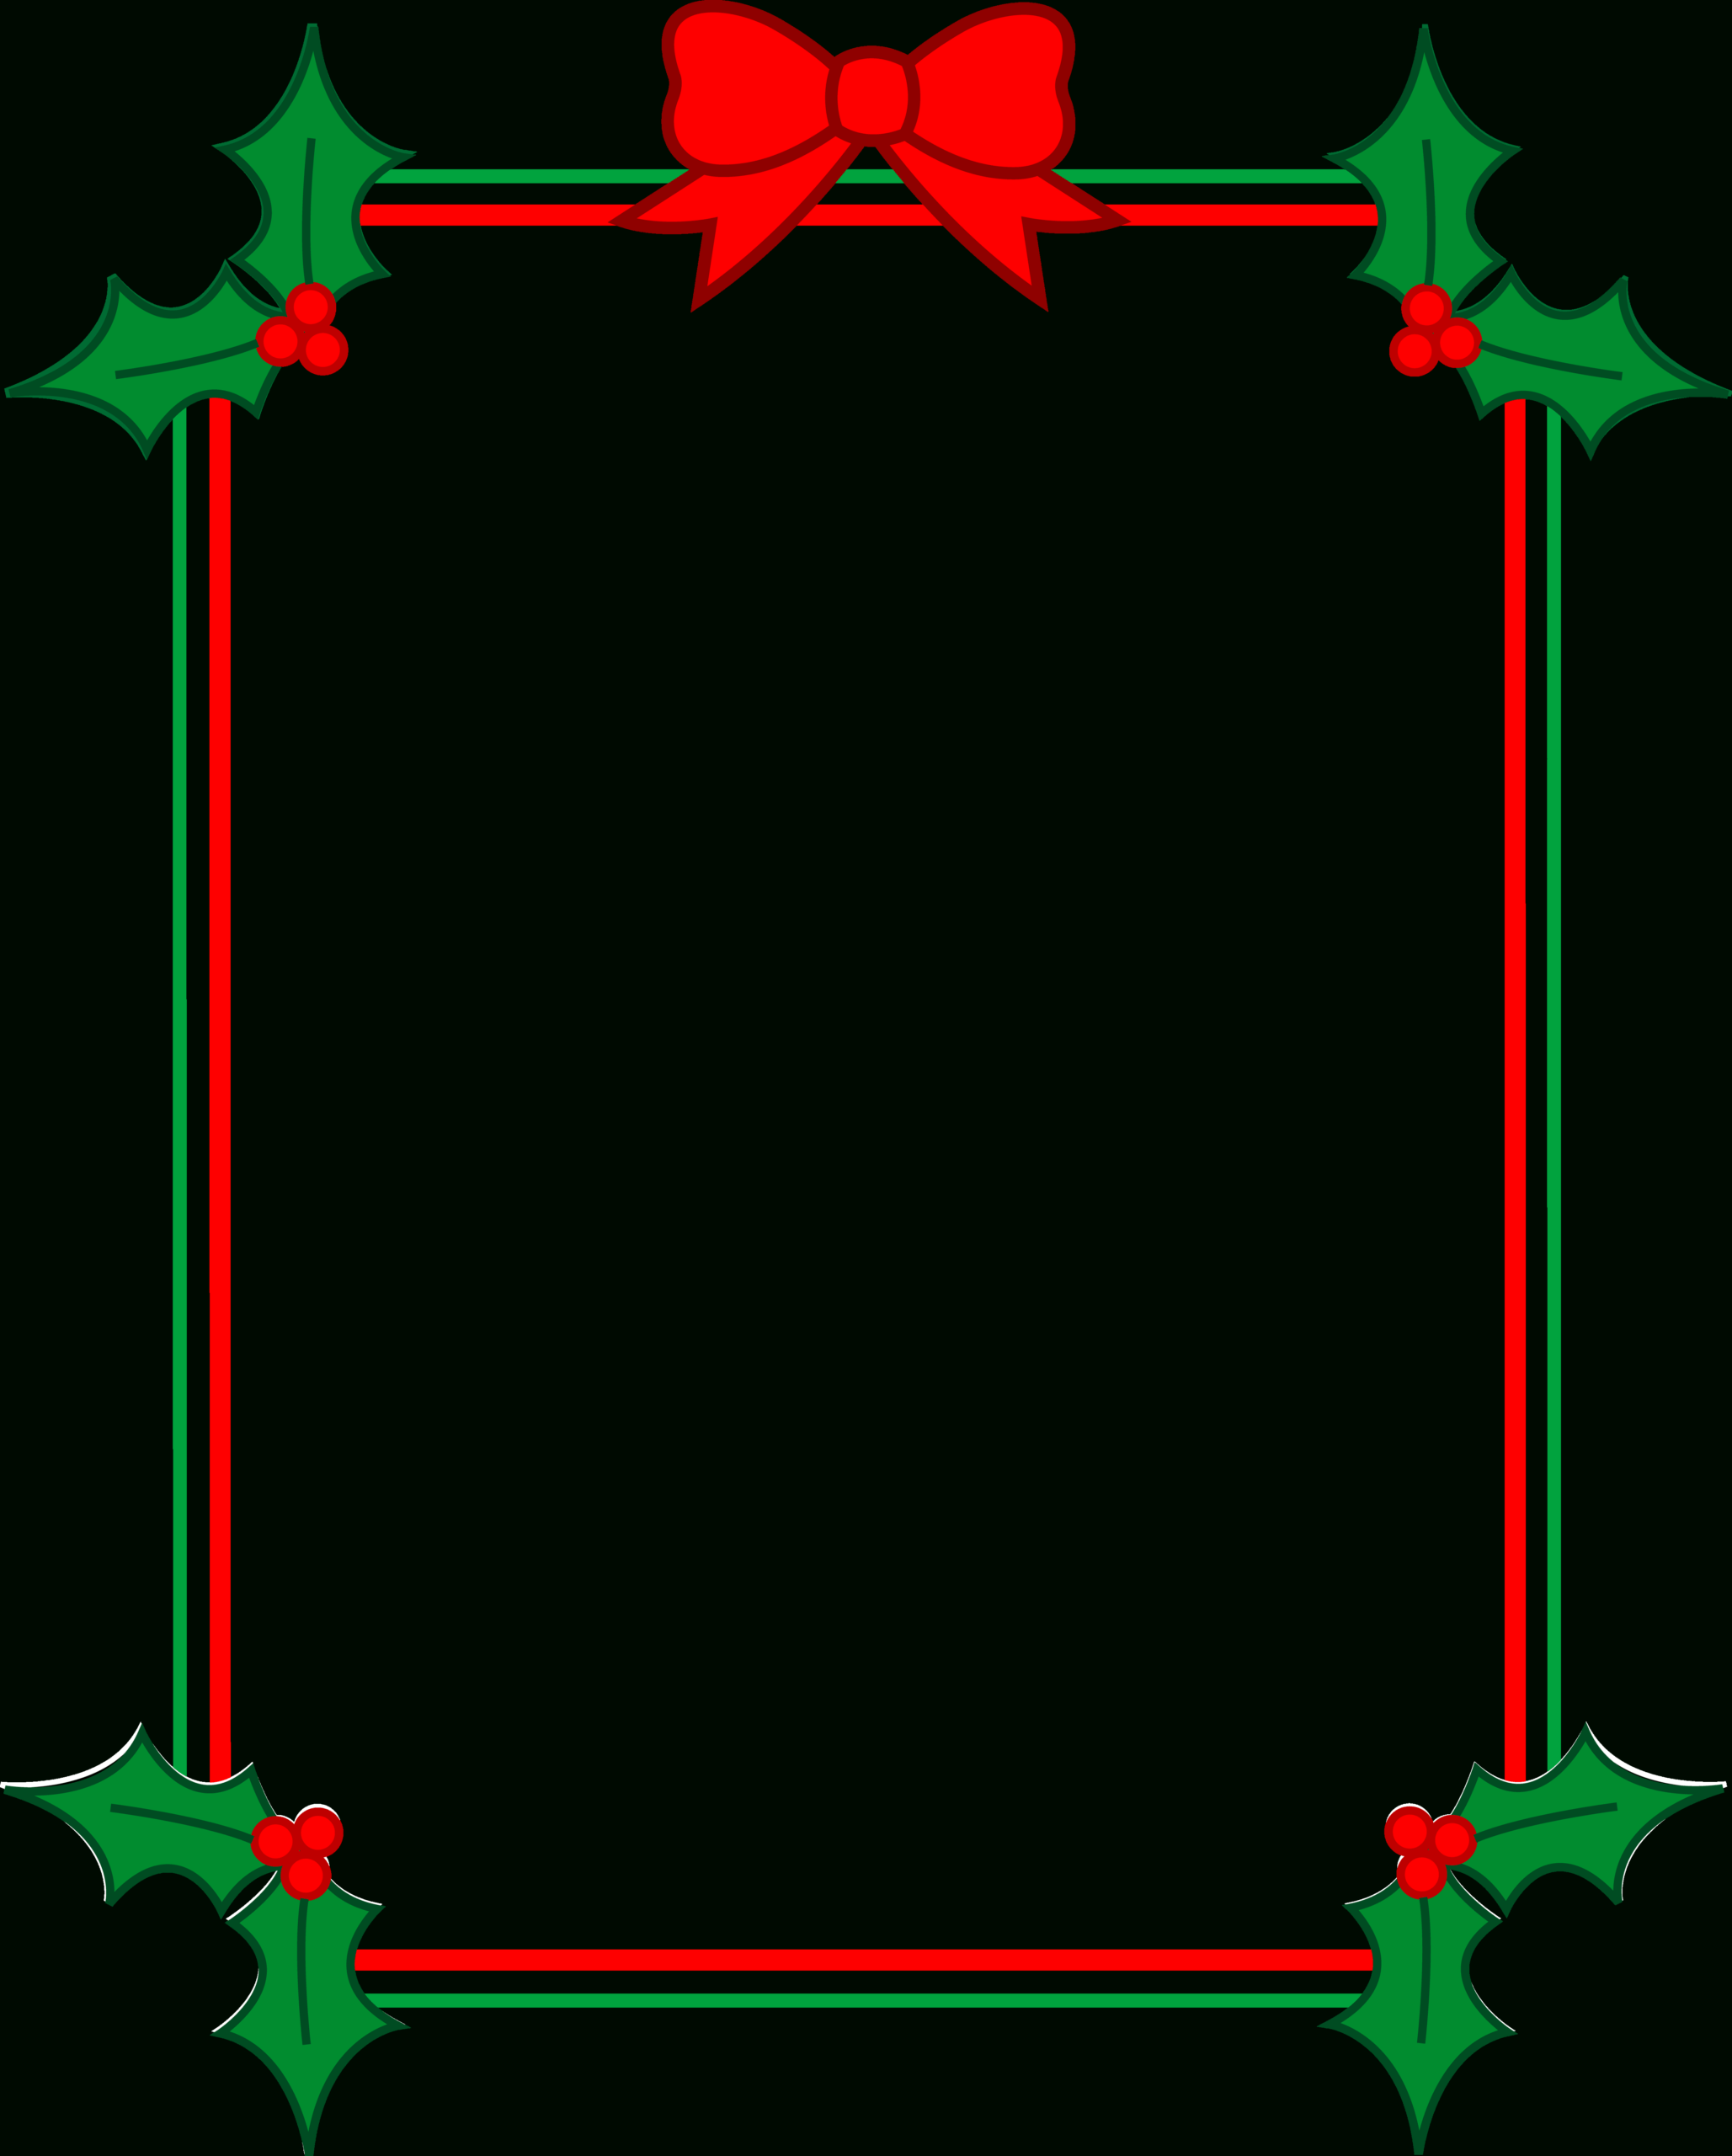 Holiday Borders For Word Documents - Yatay.horizonconsulting.co Regarding Christmas Border Word Template